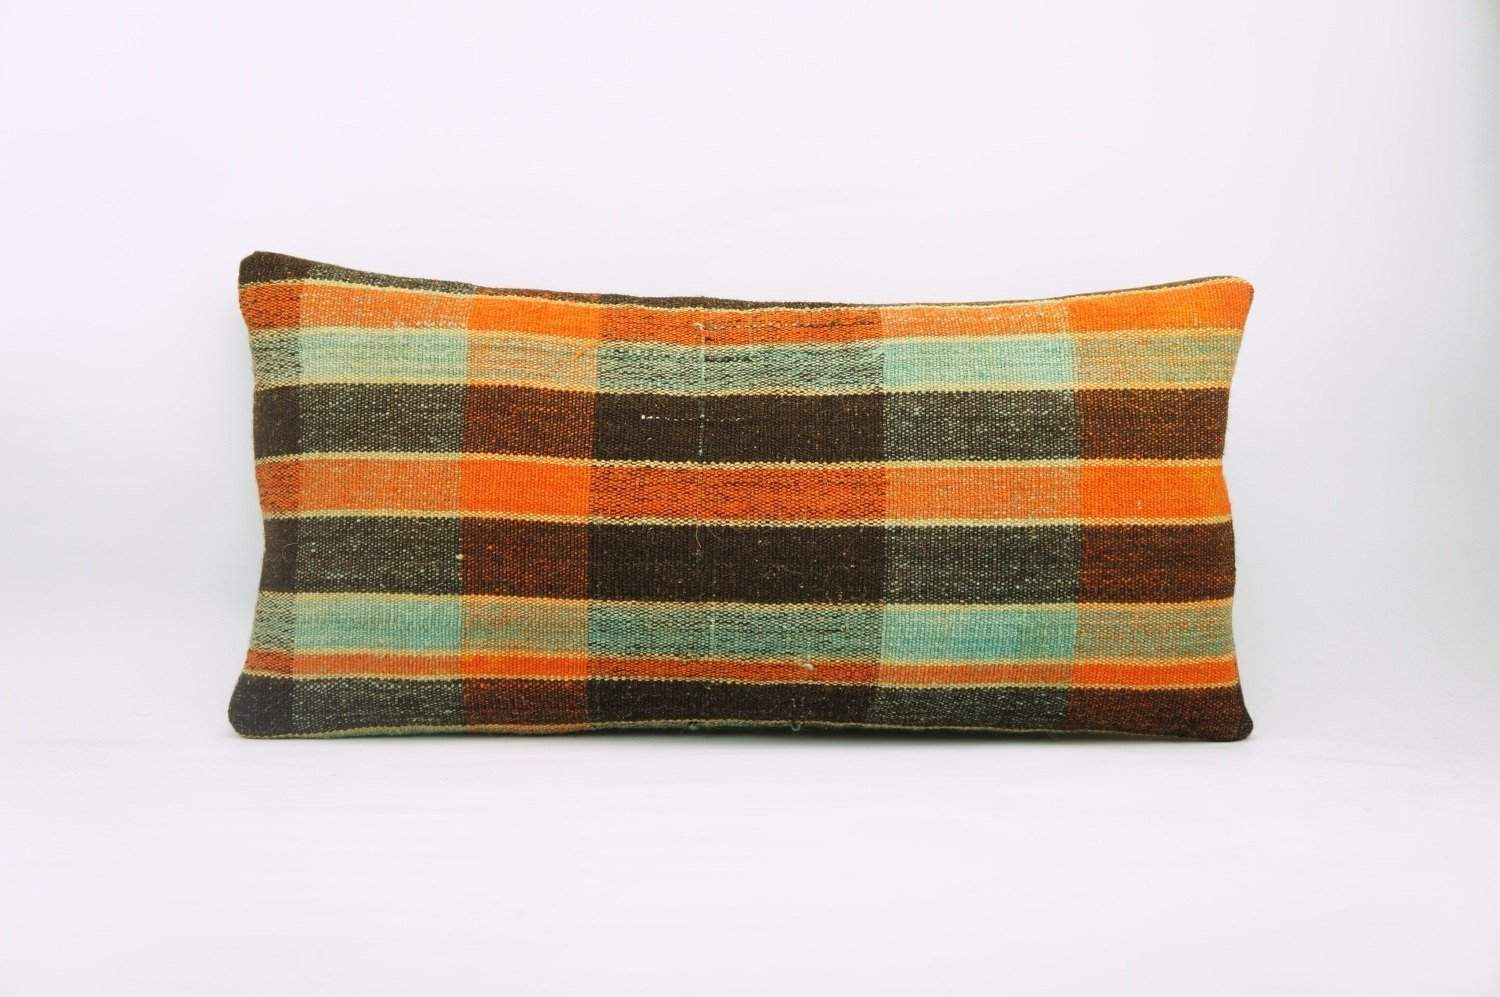 12x24 Vintage Hand Woven Kilim Pillow Lumbar Bohemian pillow case, 975